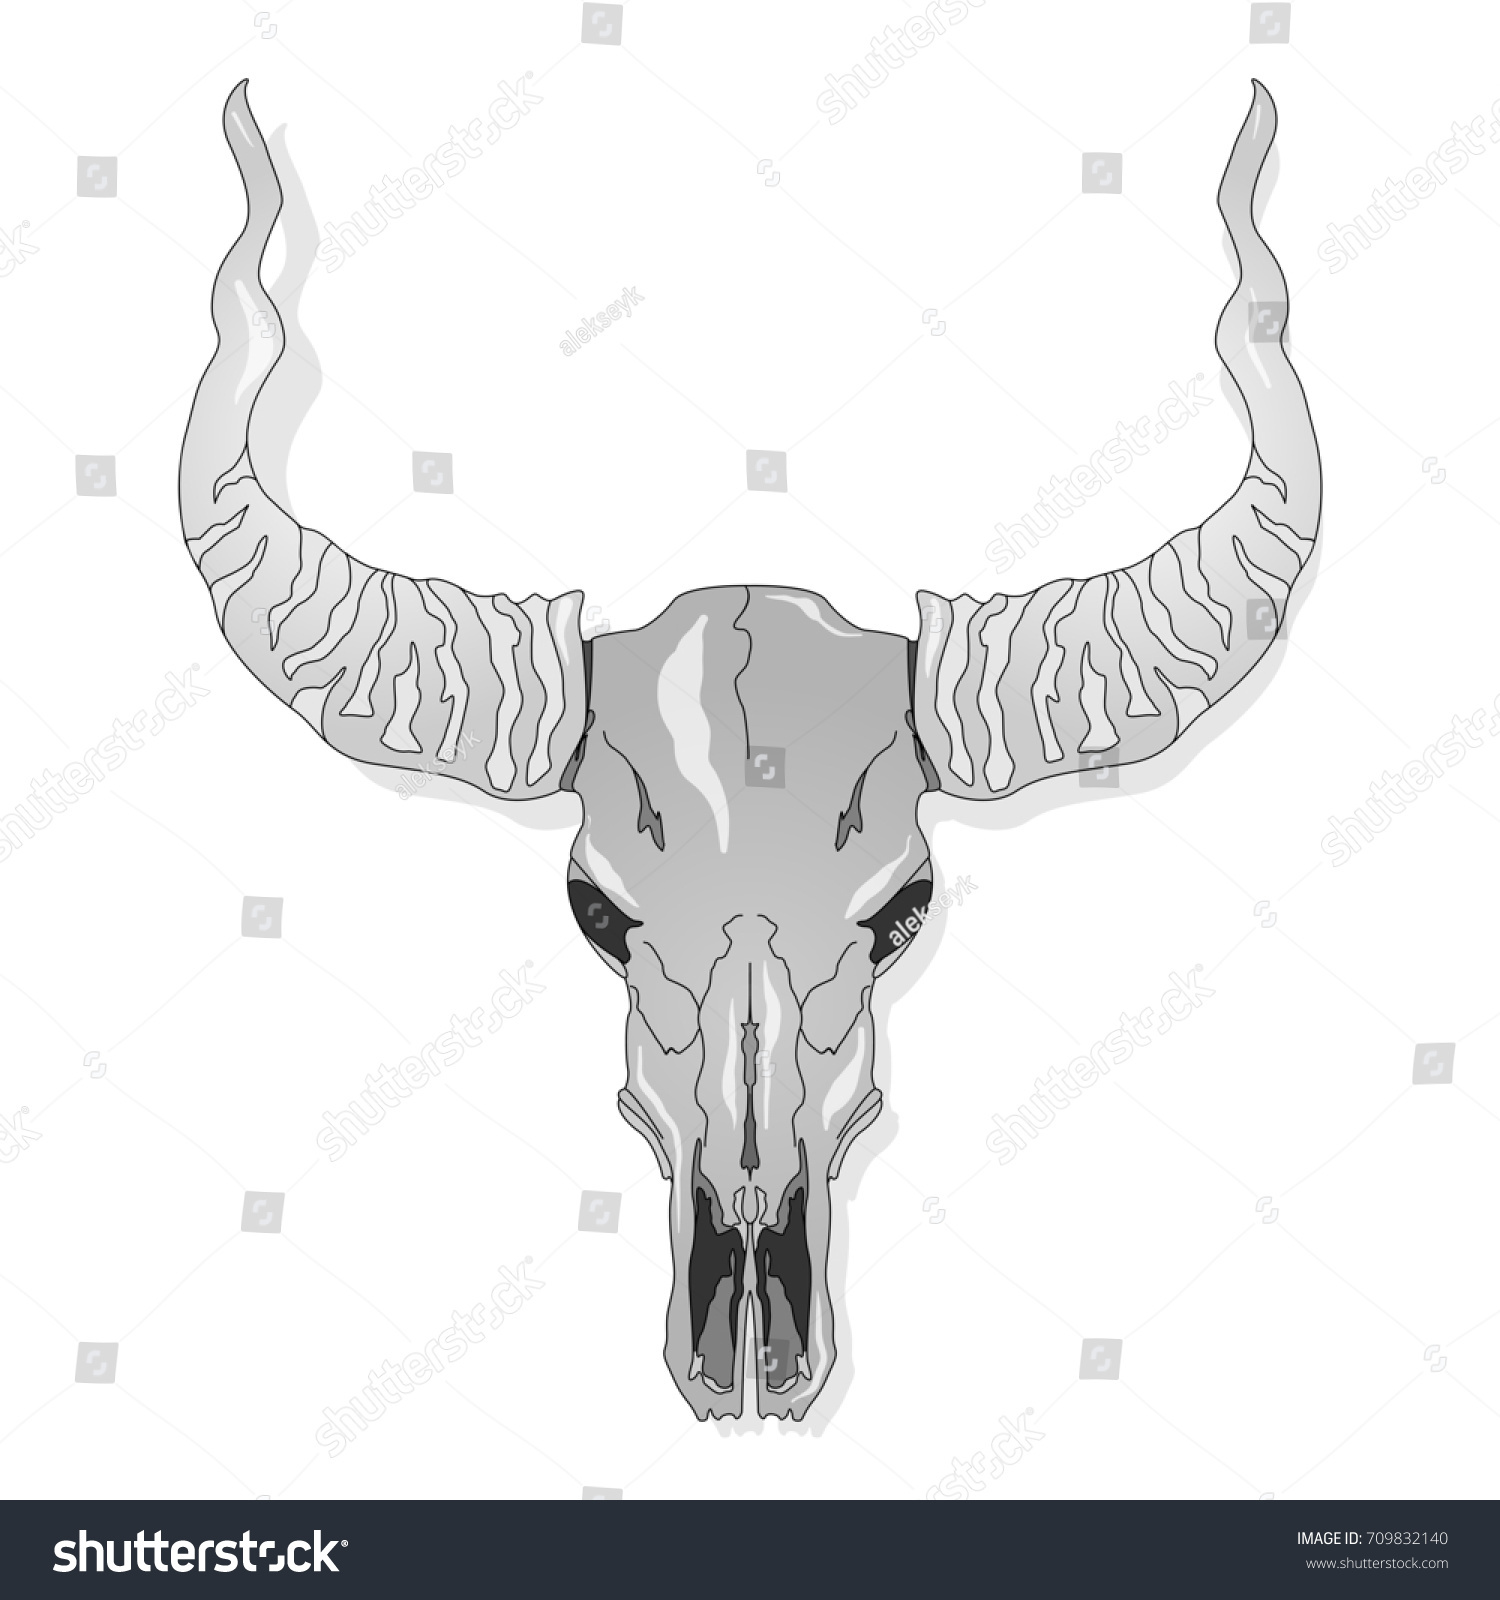 Skull Hand Drawn Illustration Isolated For Tattoo Or T Shirt